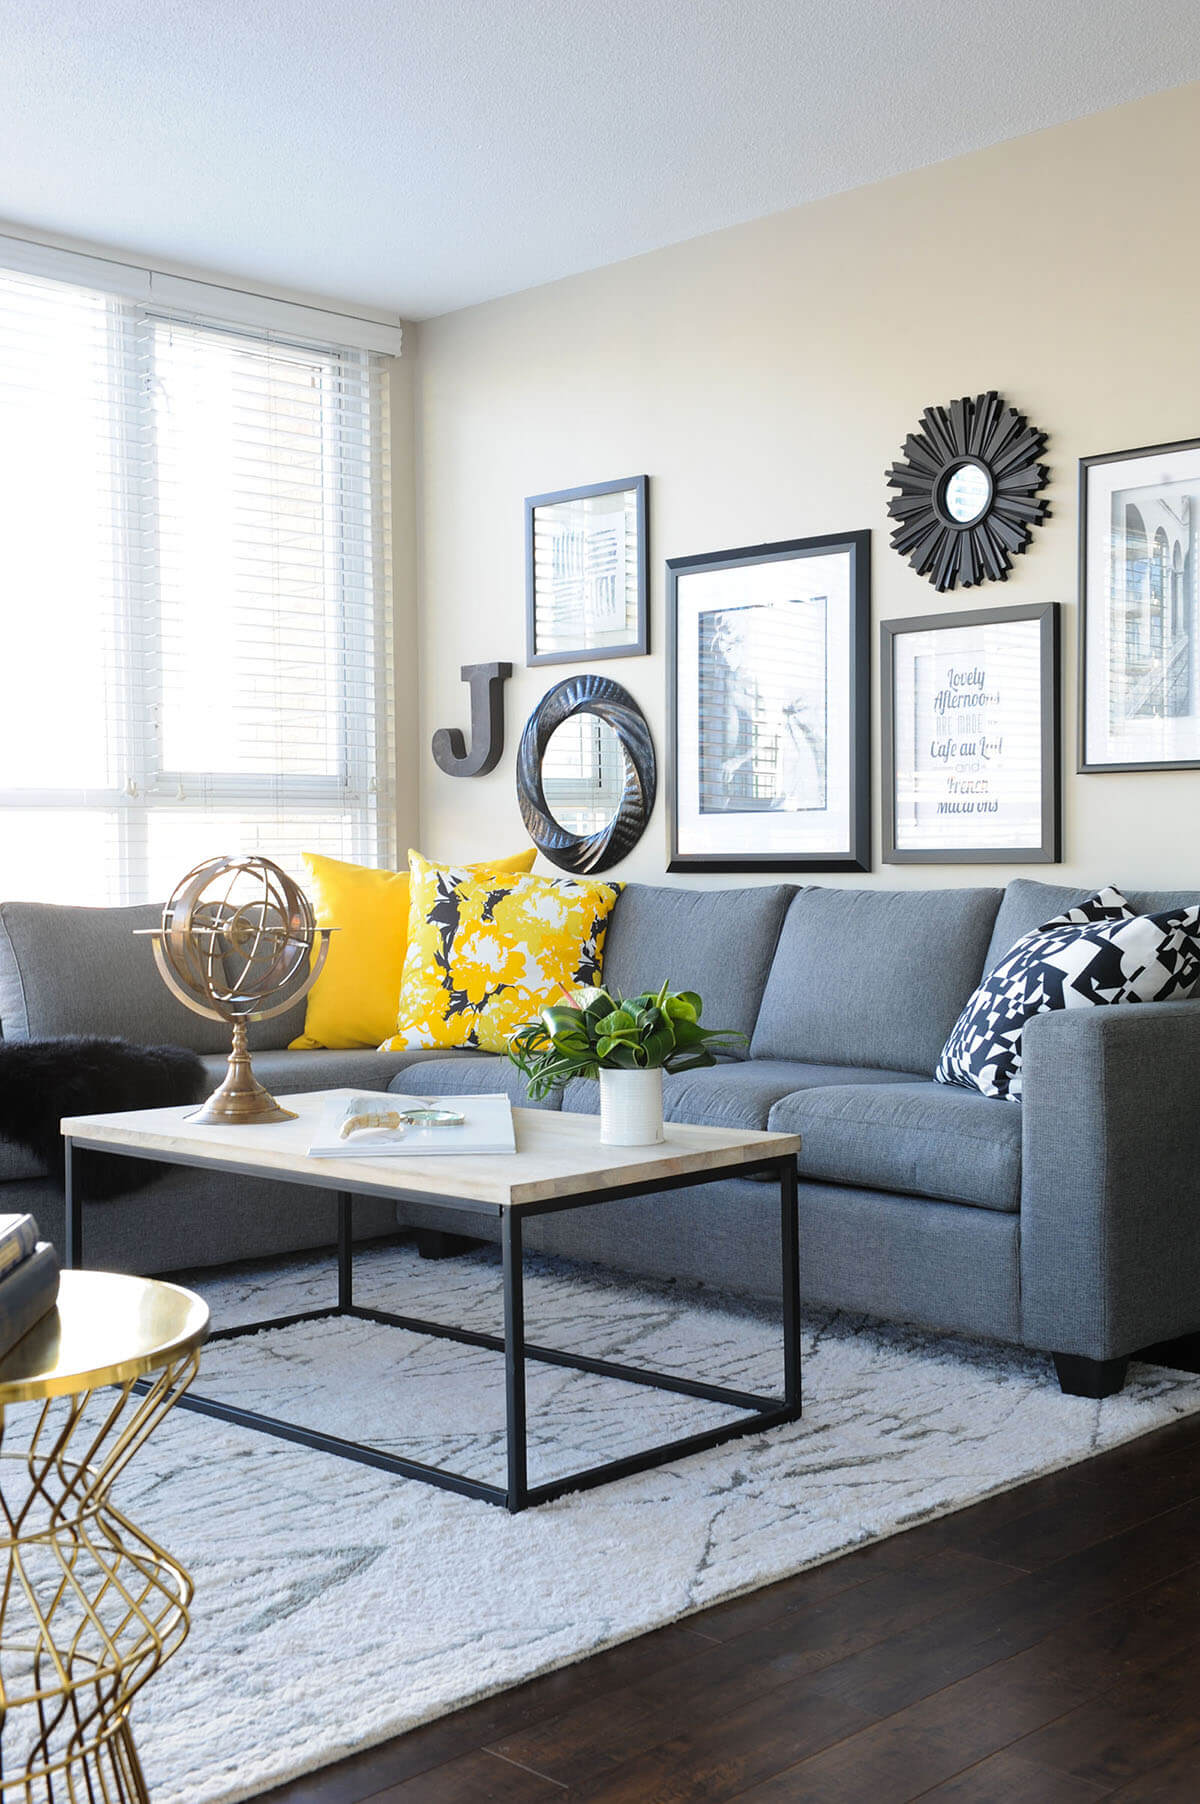 25+ Best Small Living Room Decor and Design Ideas for 2020 on Small Living Room Decorating Ideas  id=70596